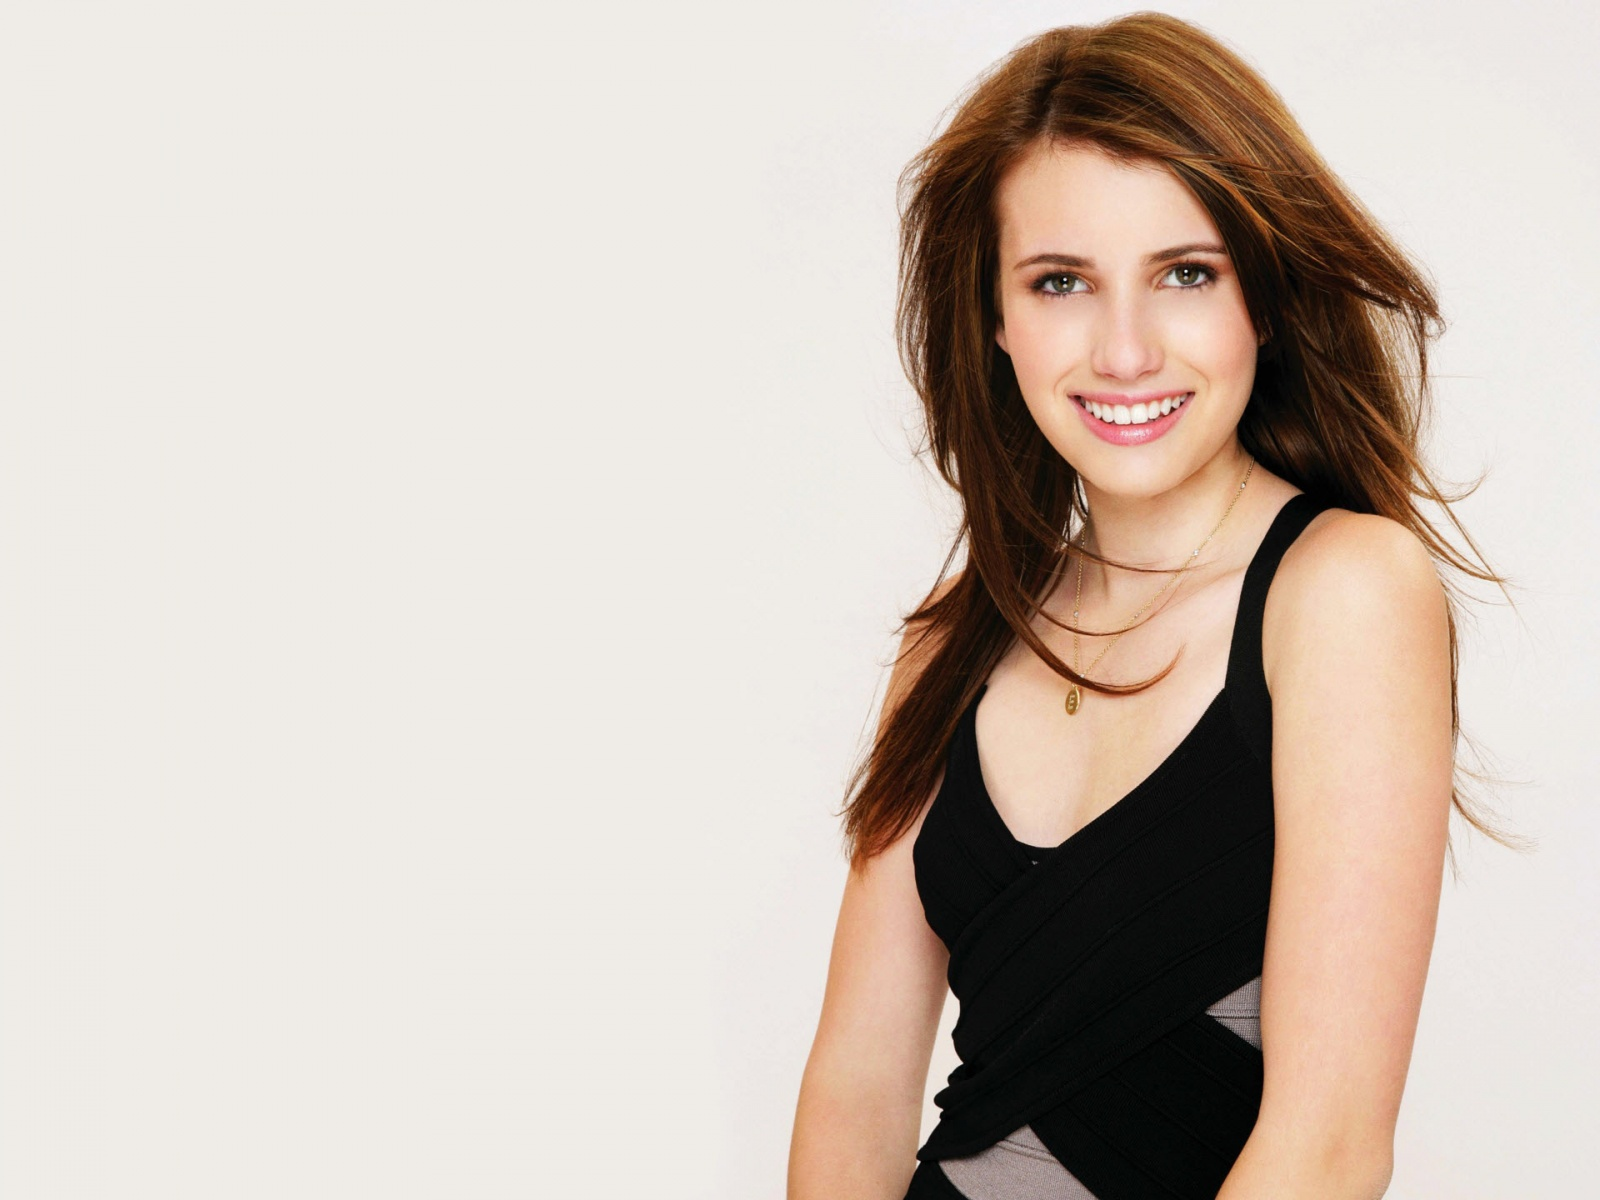 emma roberts wallpapers hd A2